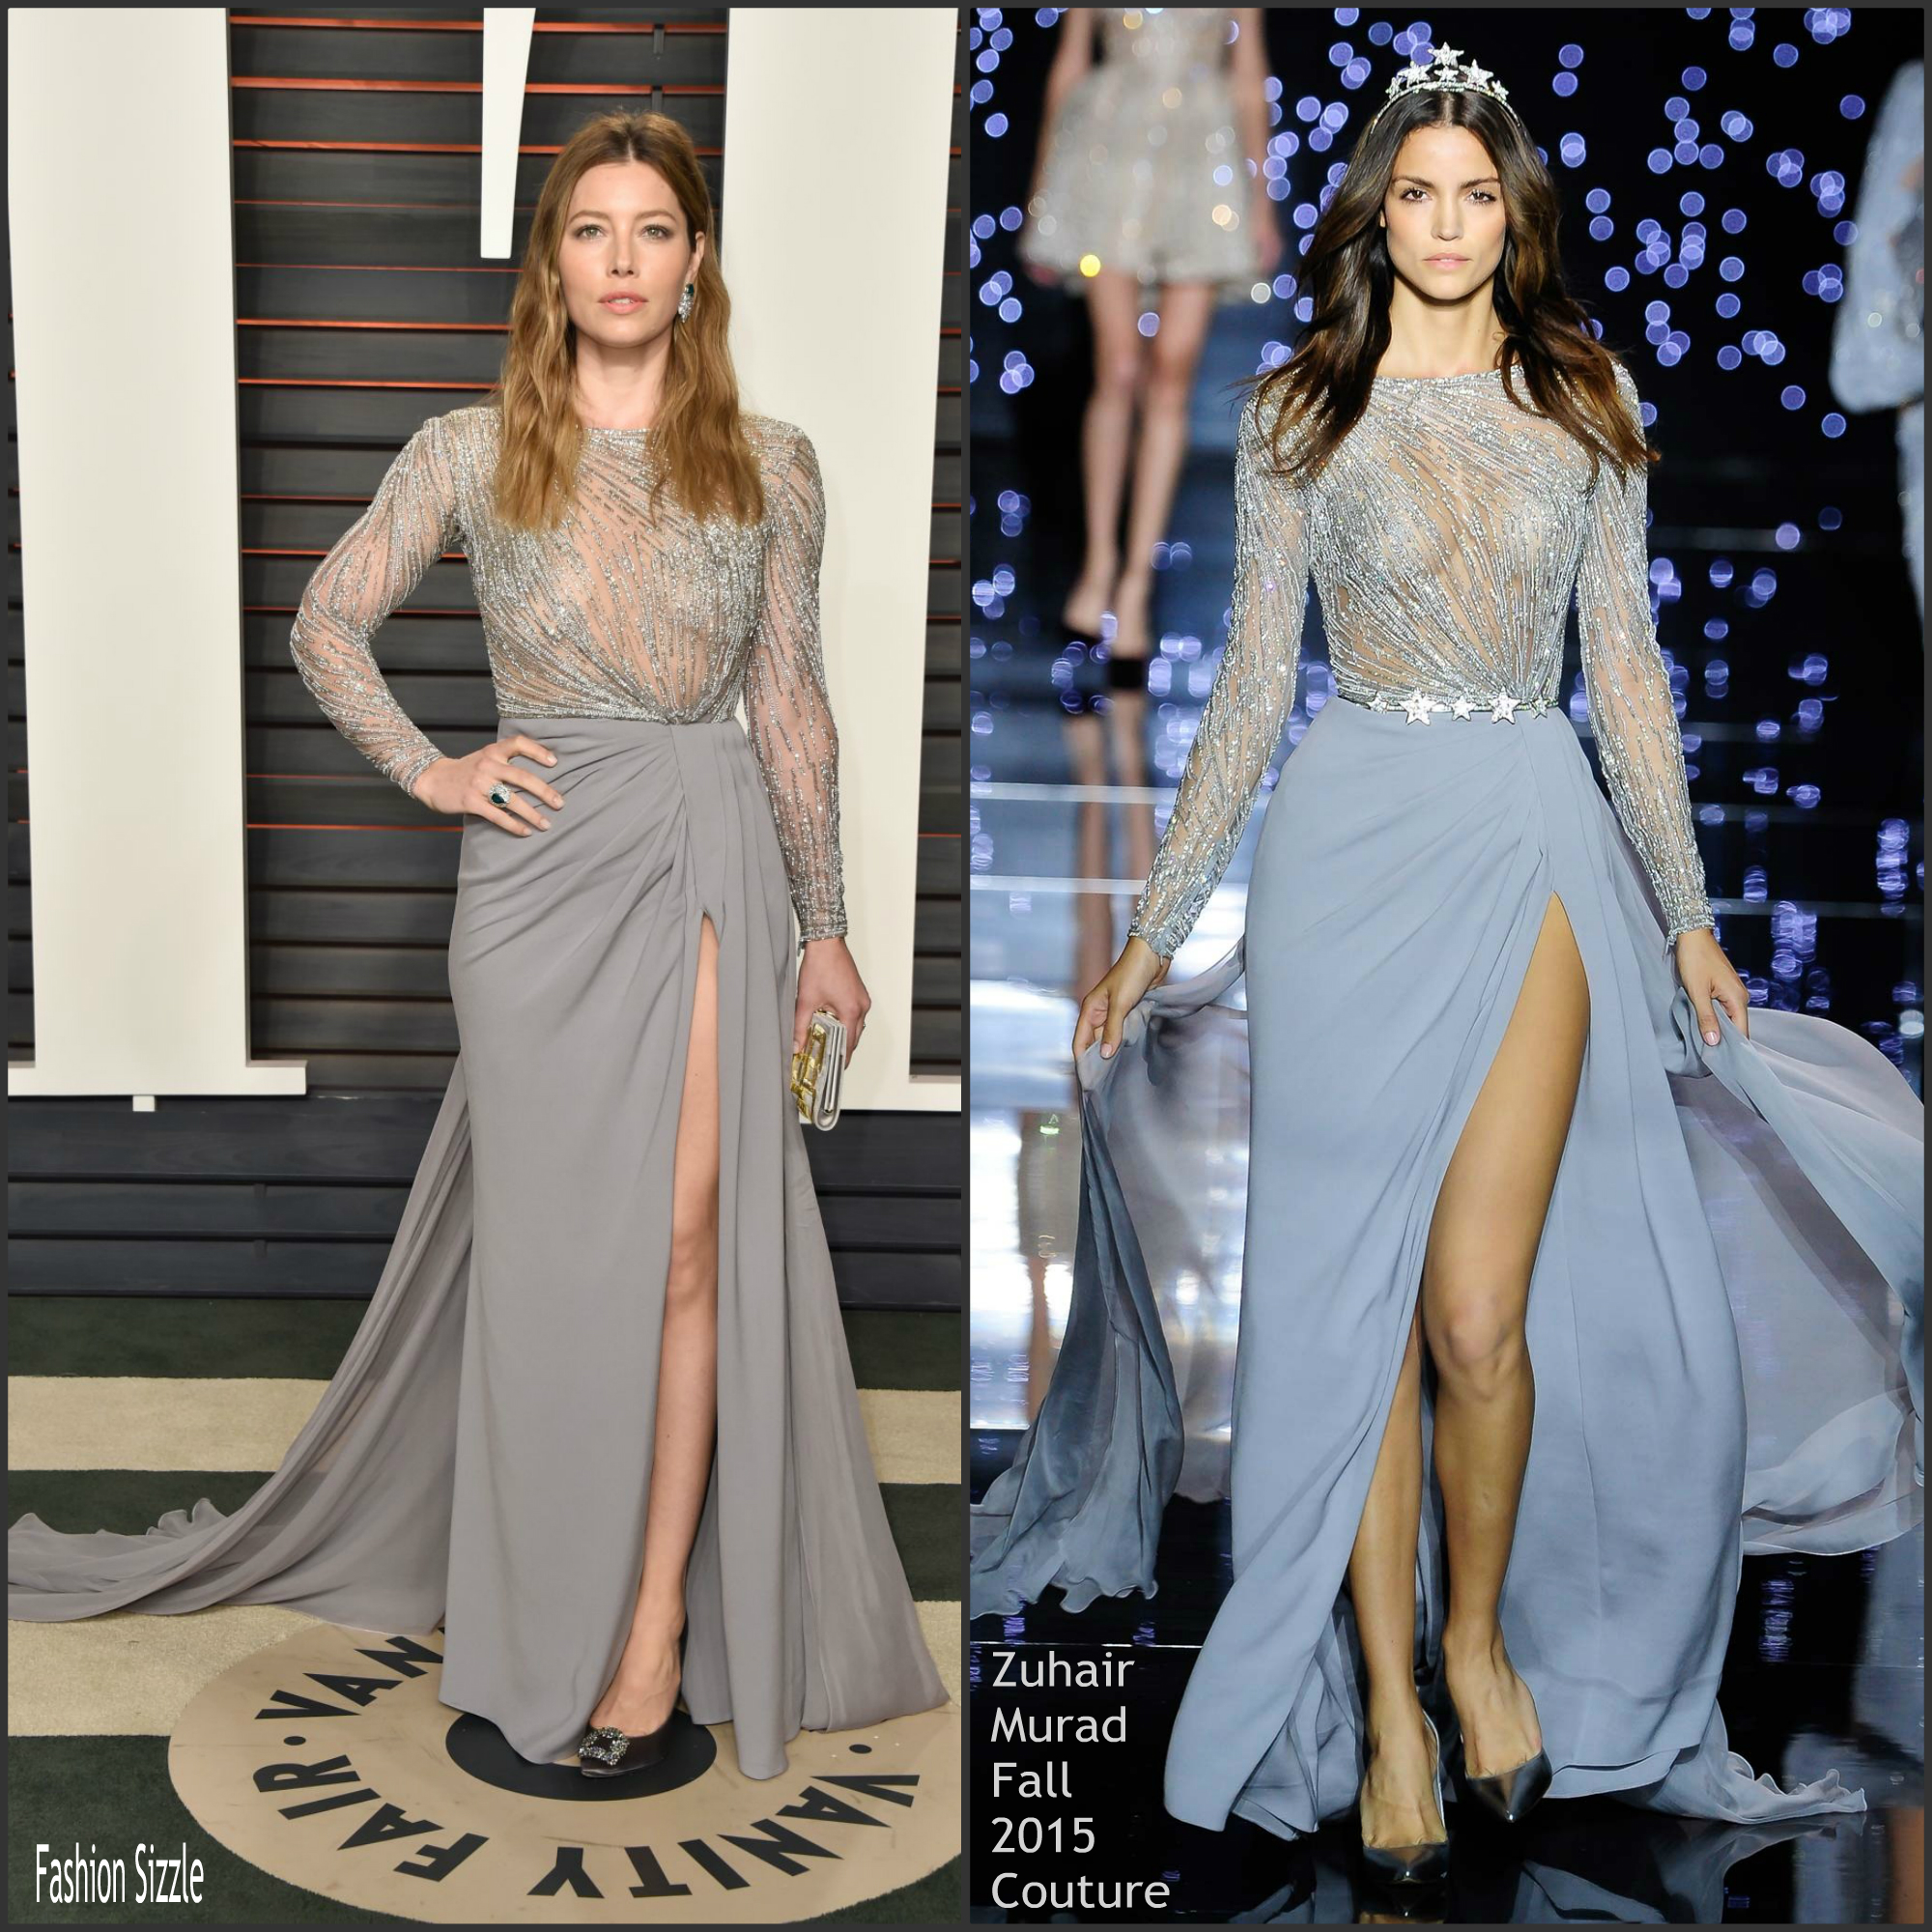 jessica-biel-in-zuhair-murad-couture-2016-vanity-fair-oscar-party